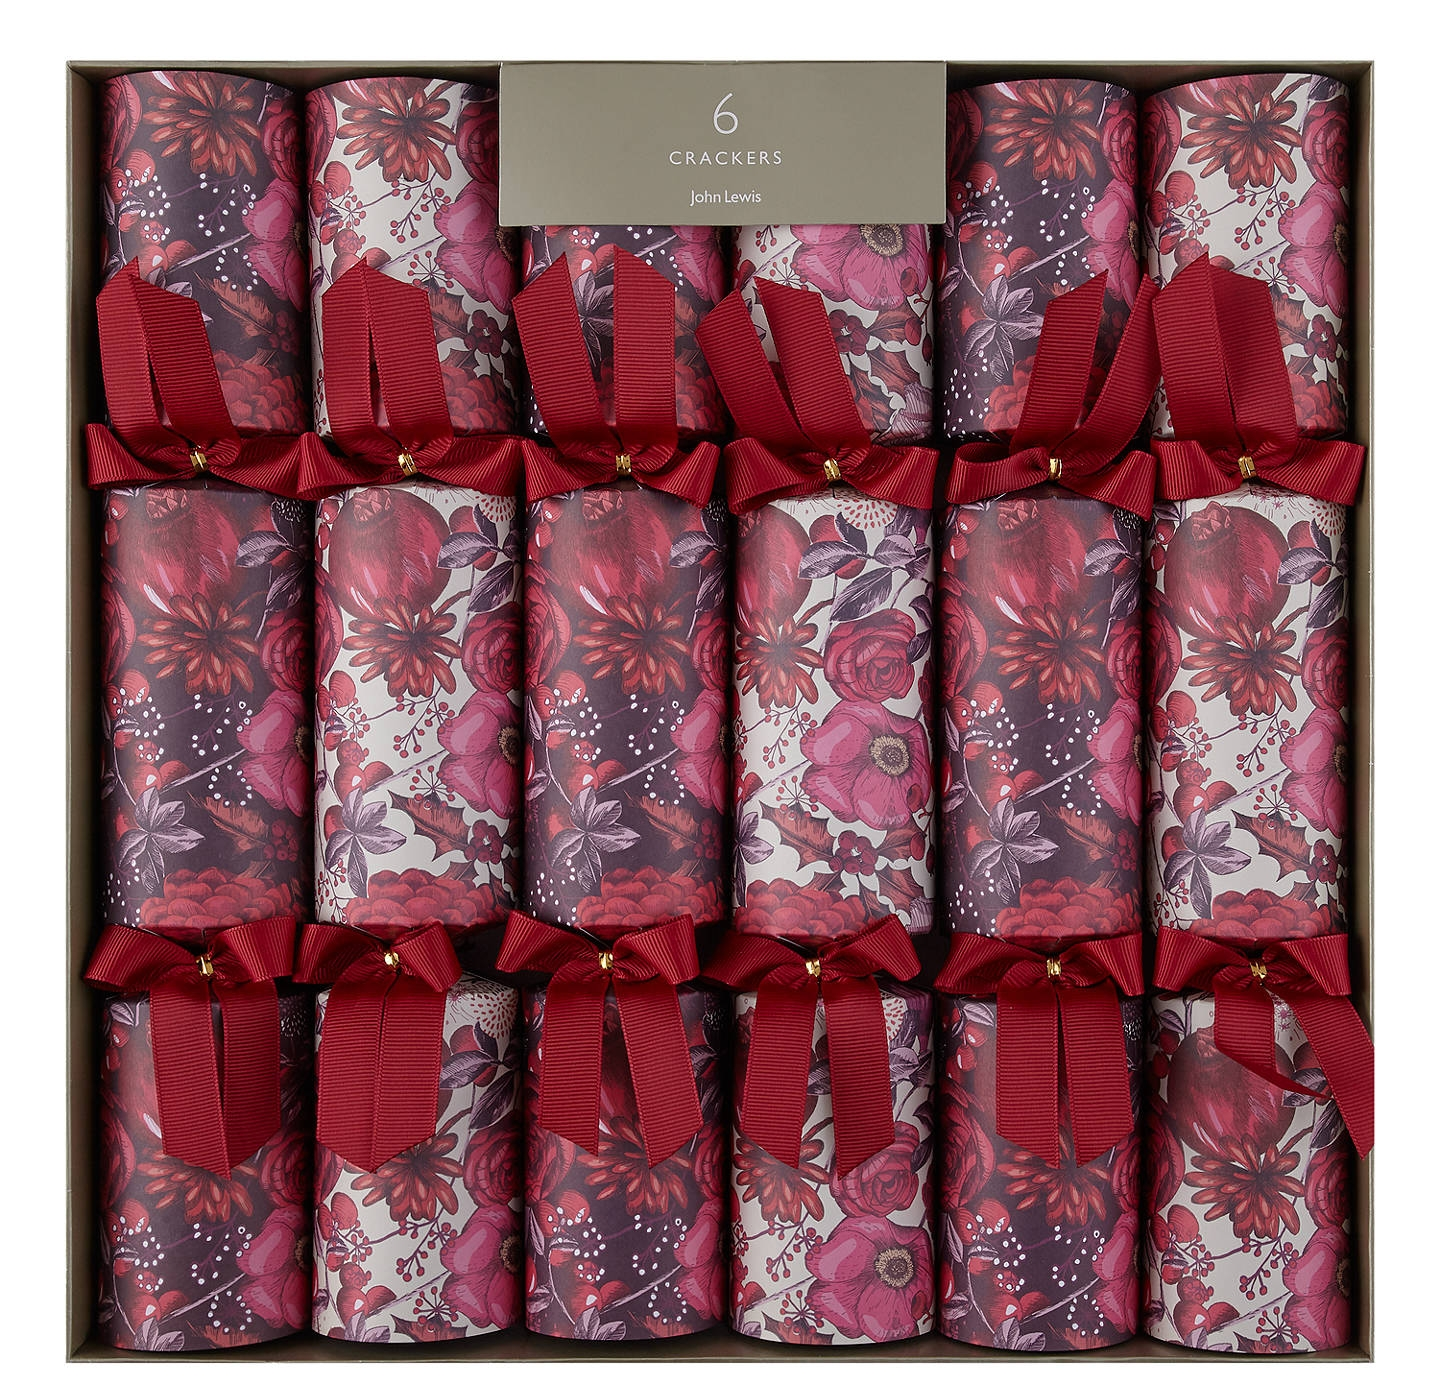 Fruits & Florals Luxury Crackers   John Lewis - £20 for six